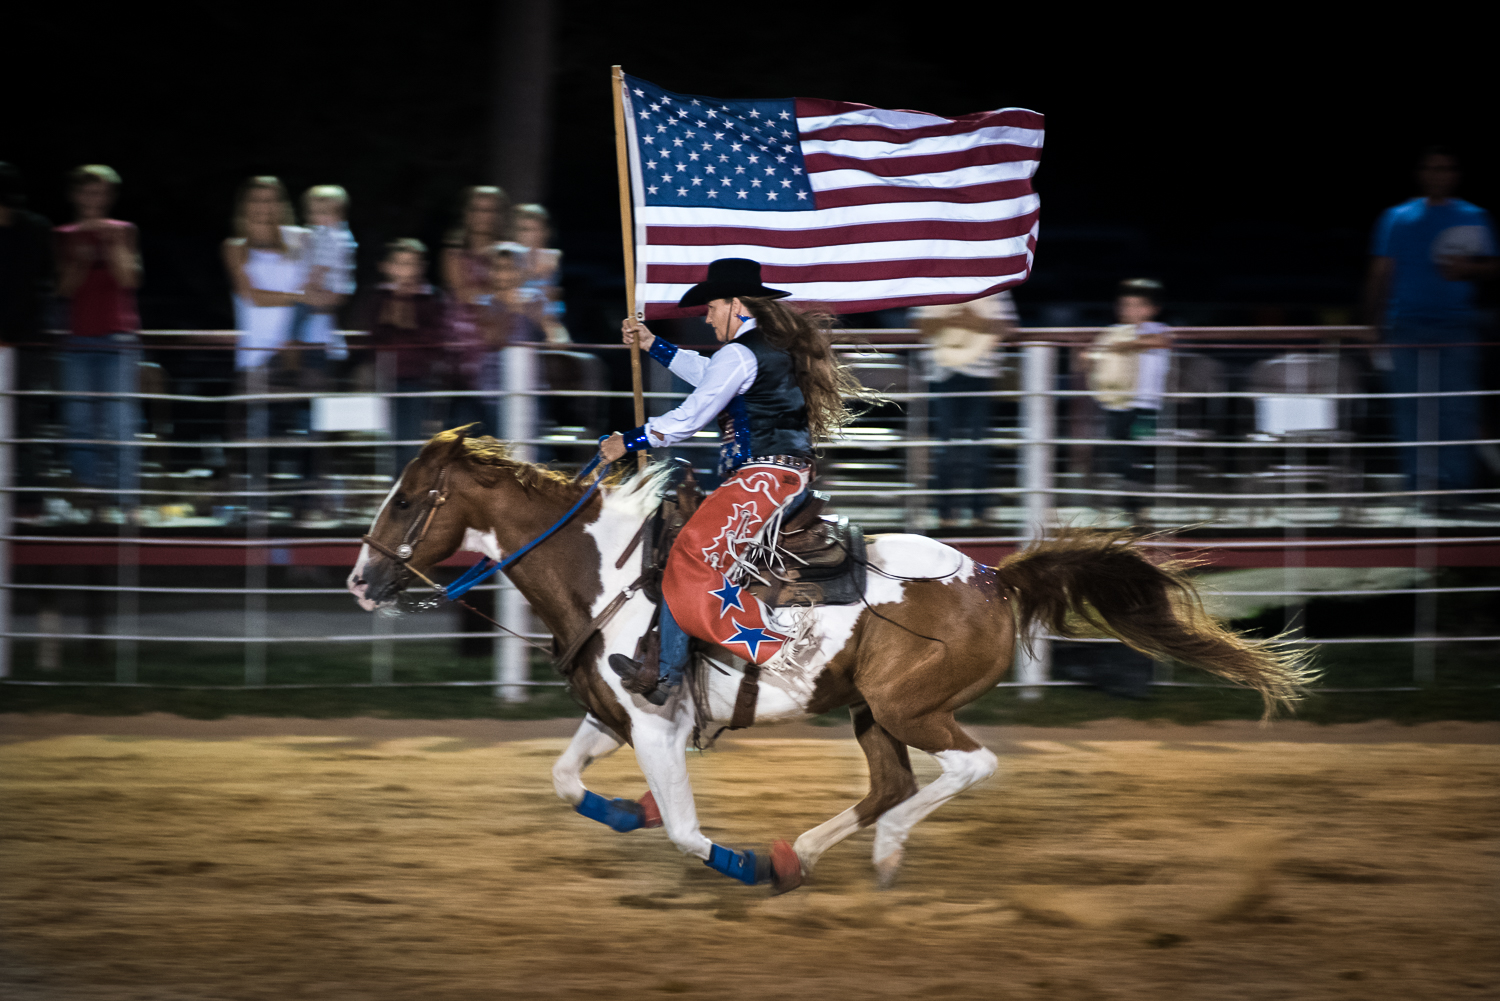 © Ayash Basu. Presenting the national flag followed by the anthem at the start of every rodeo is customary etiquette. Girls, women and horses compete for these flag spots. It's a great way to stay involved with the rodeo and continue riding without the burden of competitive events. Bandera 2017.